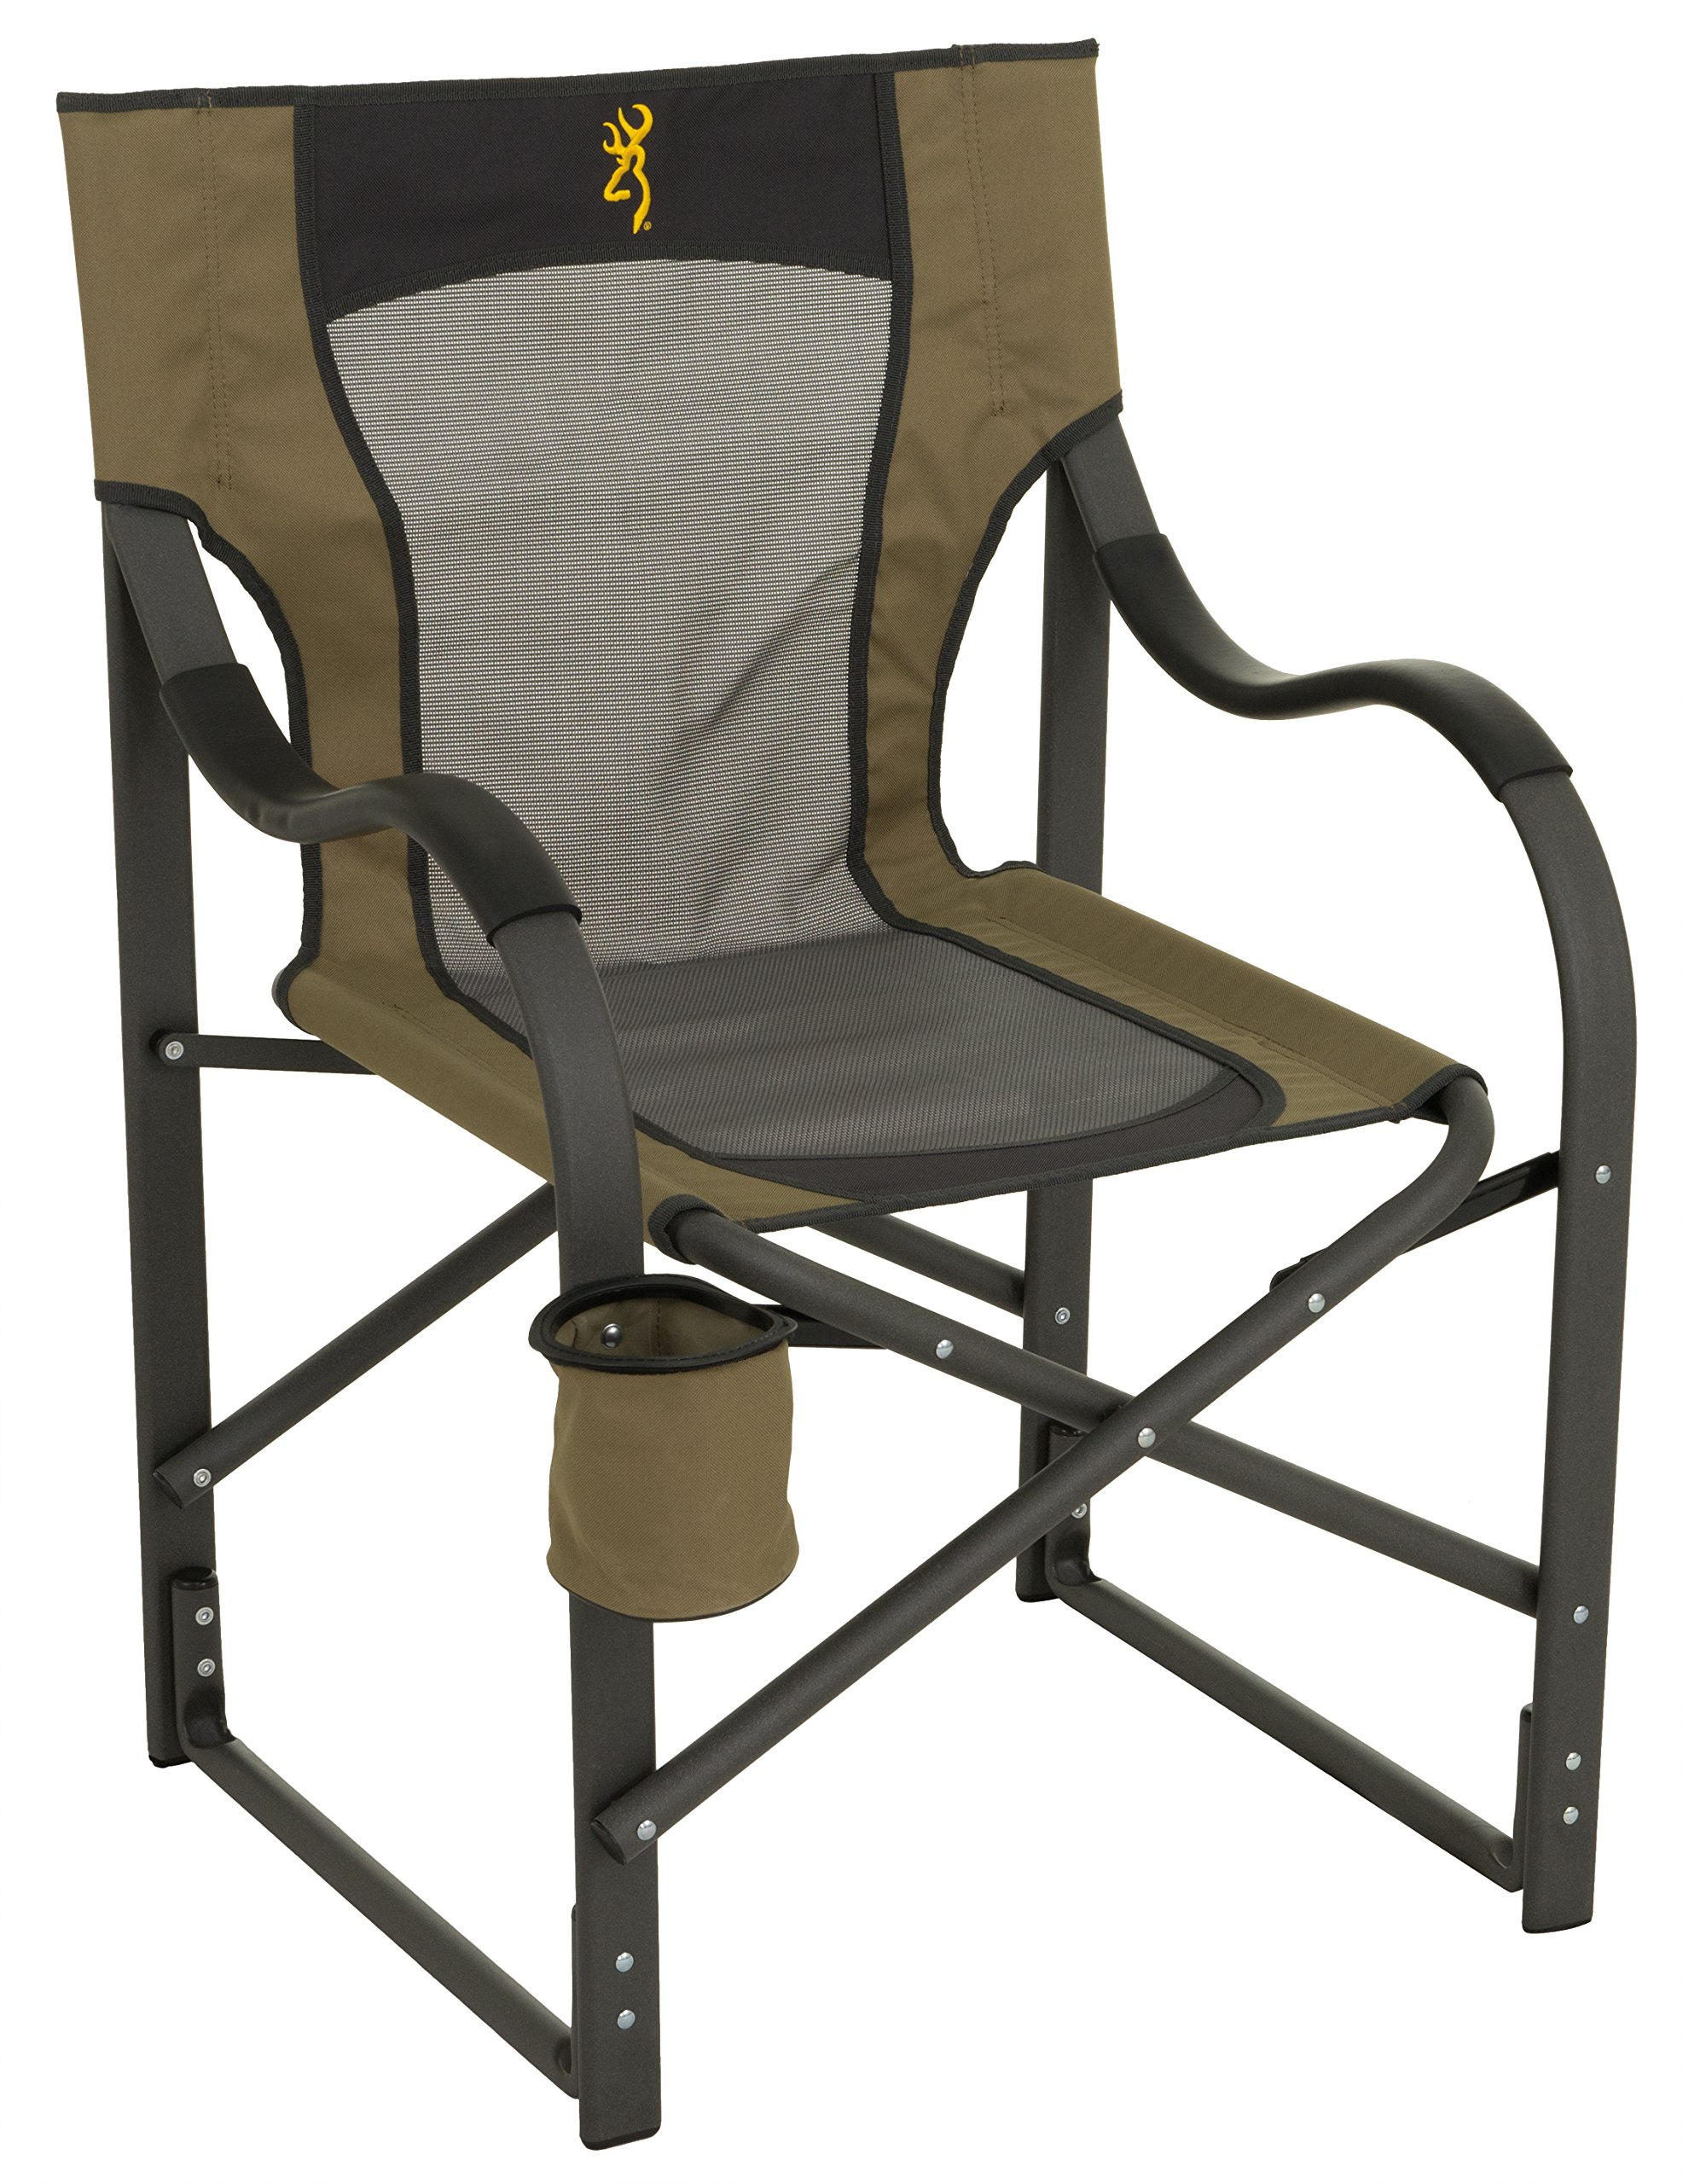 CDM product Browning Camping Camp Chair small thumbnail image